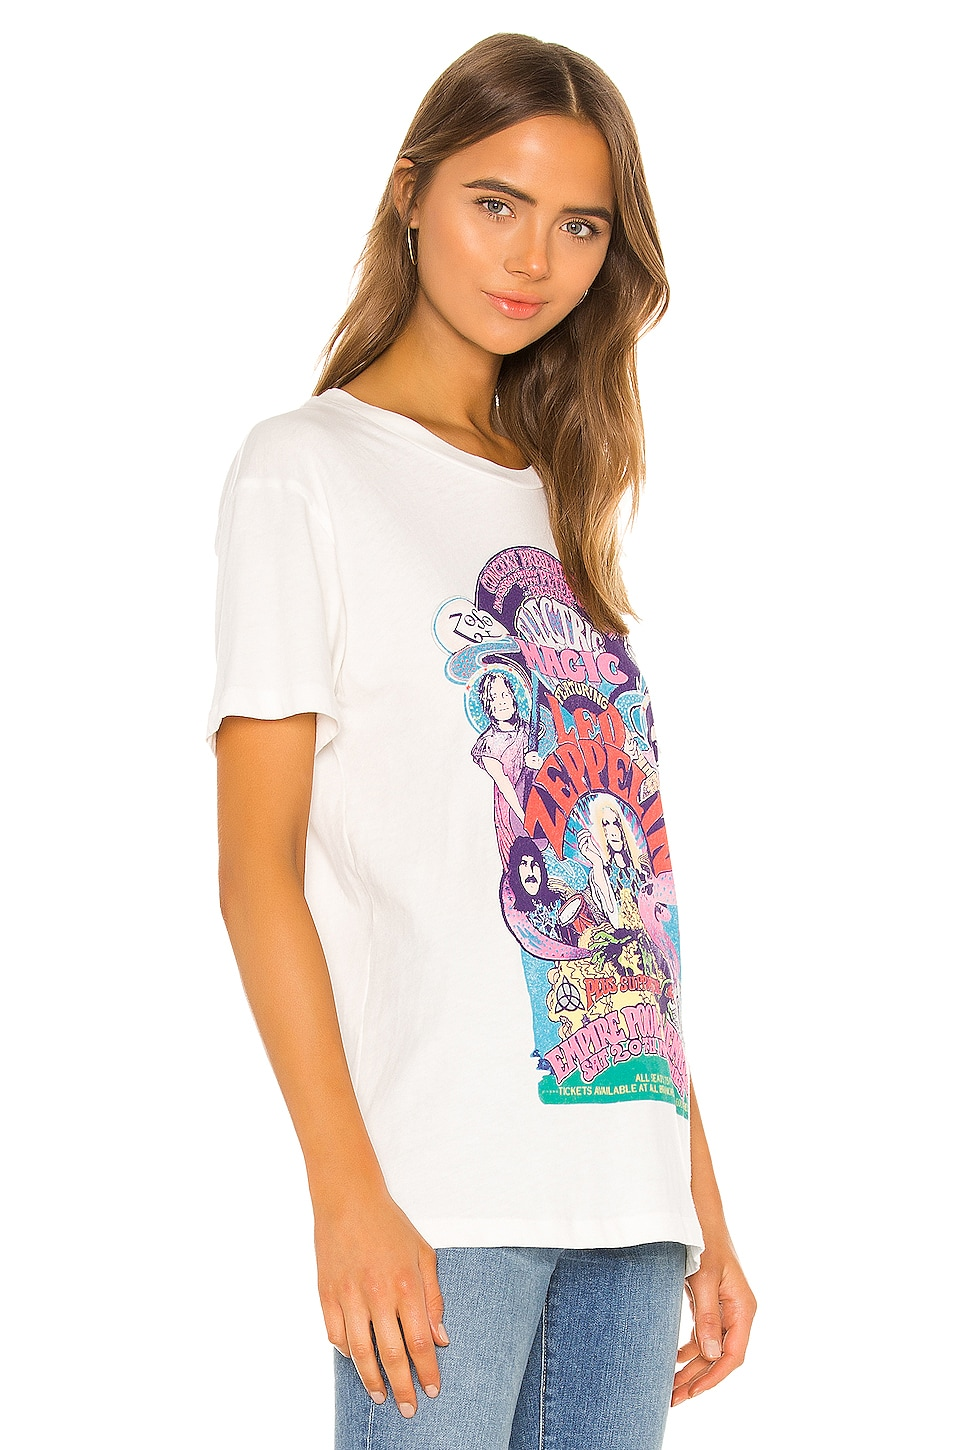 Led Zeppelin Electric Magic Weekend Tee, view 3, click to view large image.